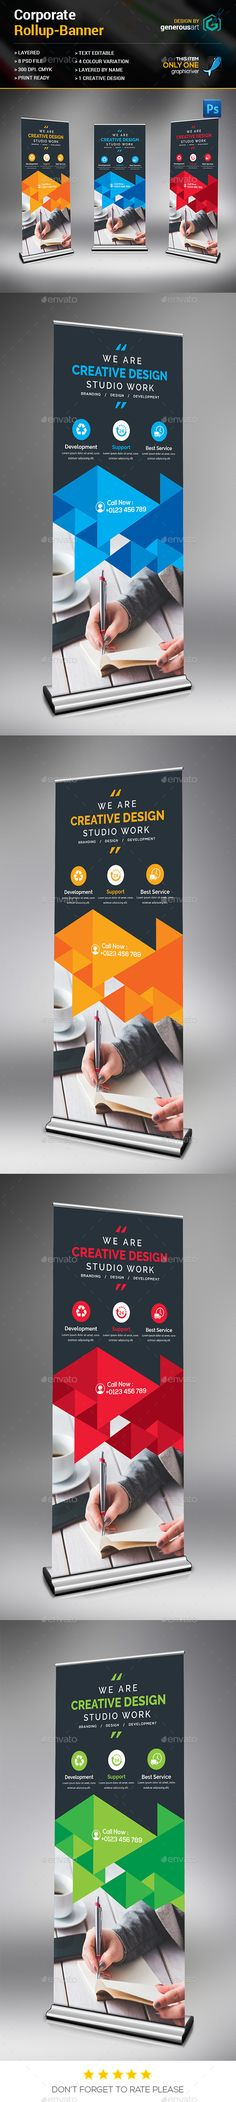 Creative Rollup Banner Template PSD. Download here: http://graphicriver.net/item/creative-rollup-banner/15693535?ref=ksioks